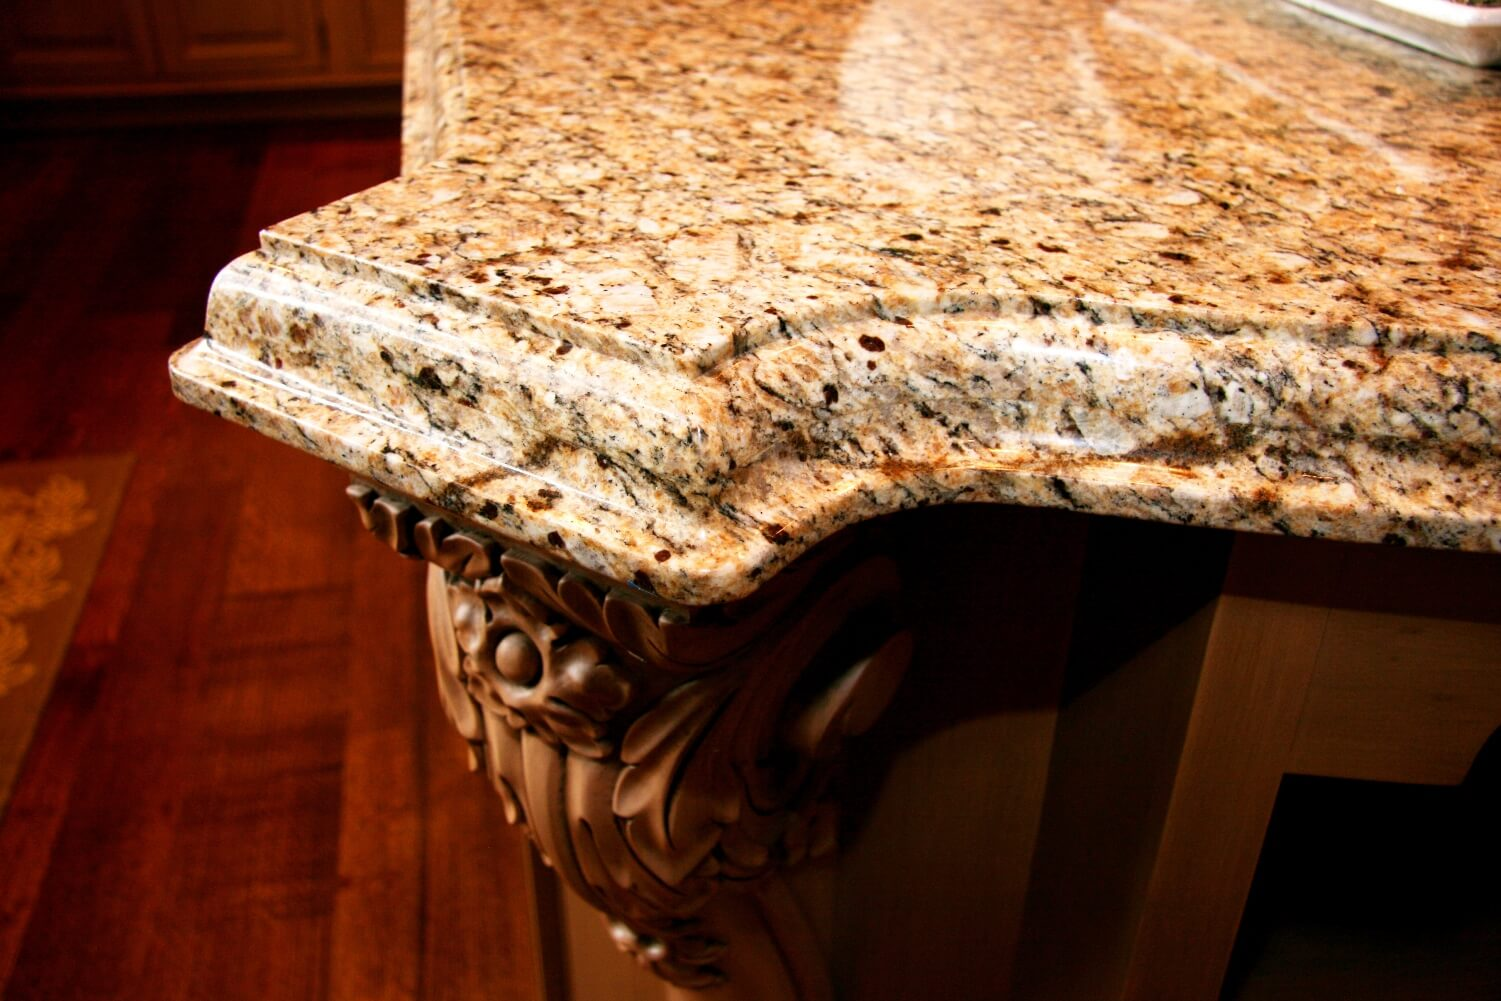 Granite Edges Invest In The Best Granite Countertops Az Has To Offer